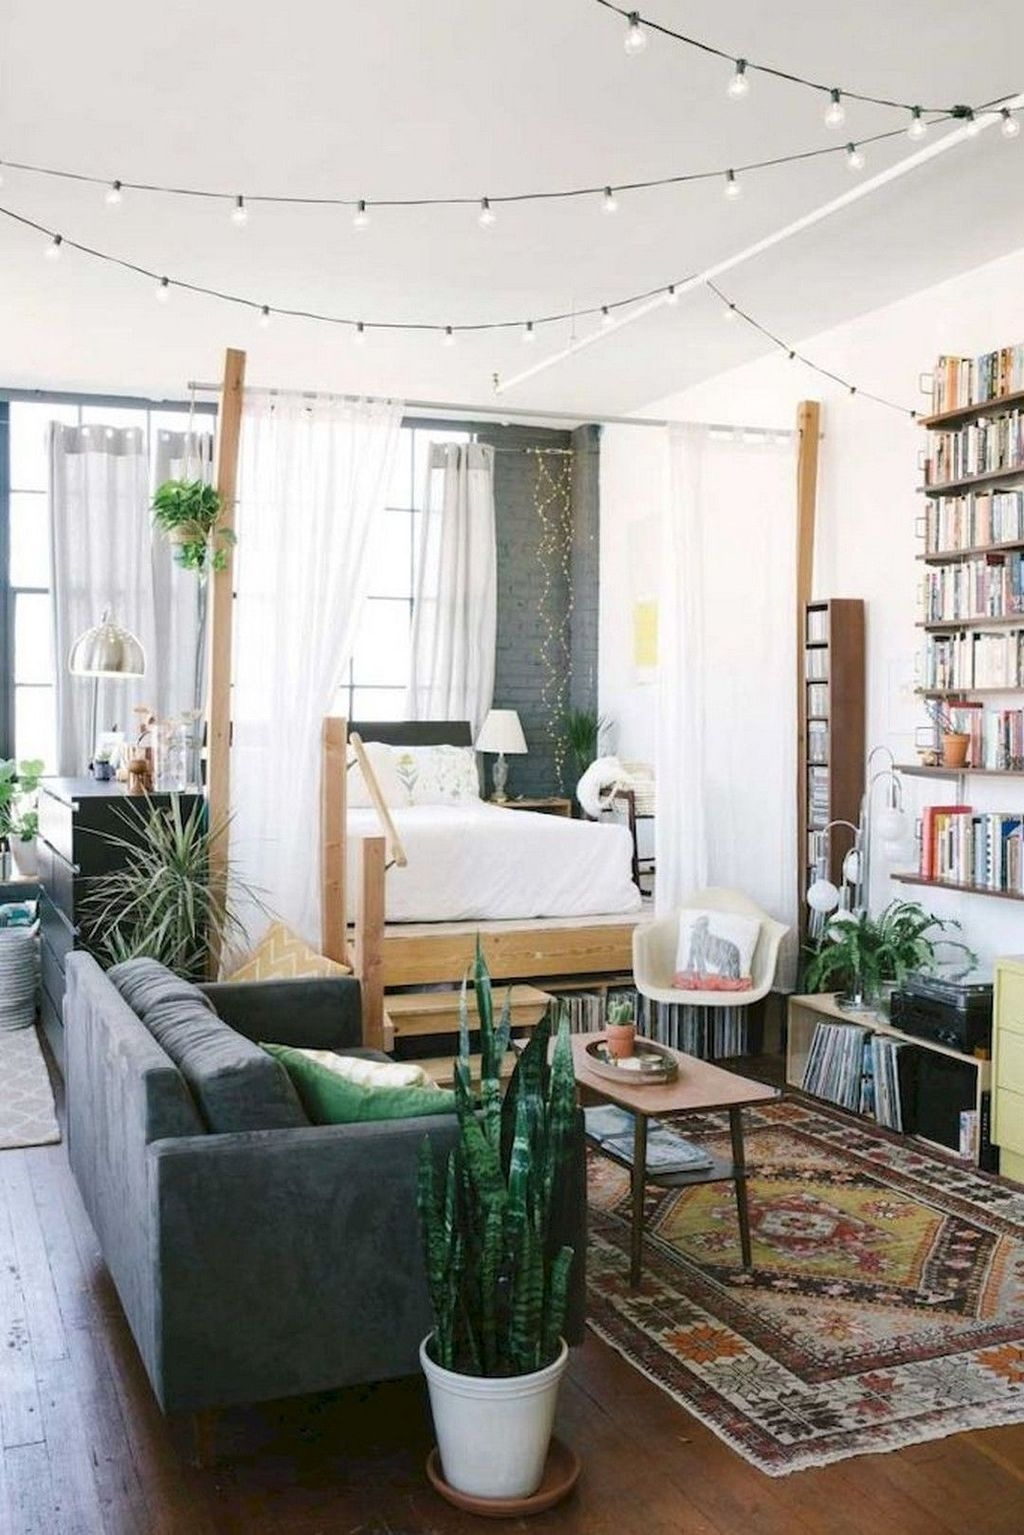 Easy Diy College Apartment Decorating Ideas On A Budget 50